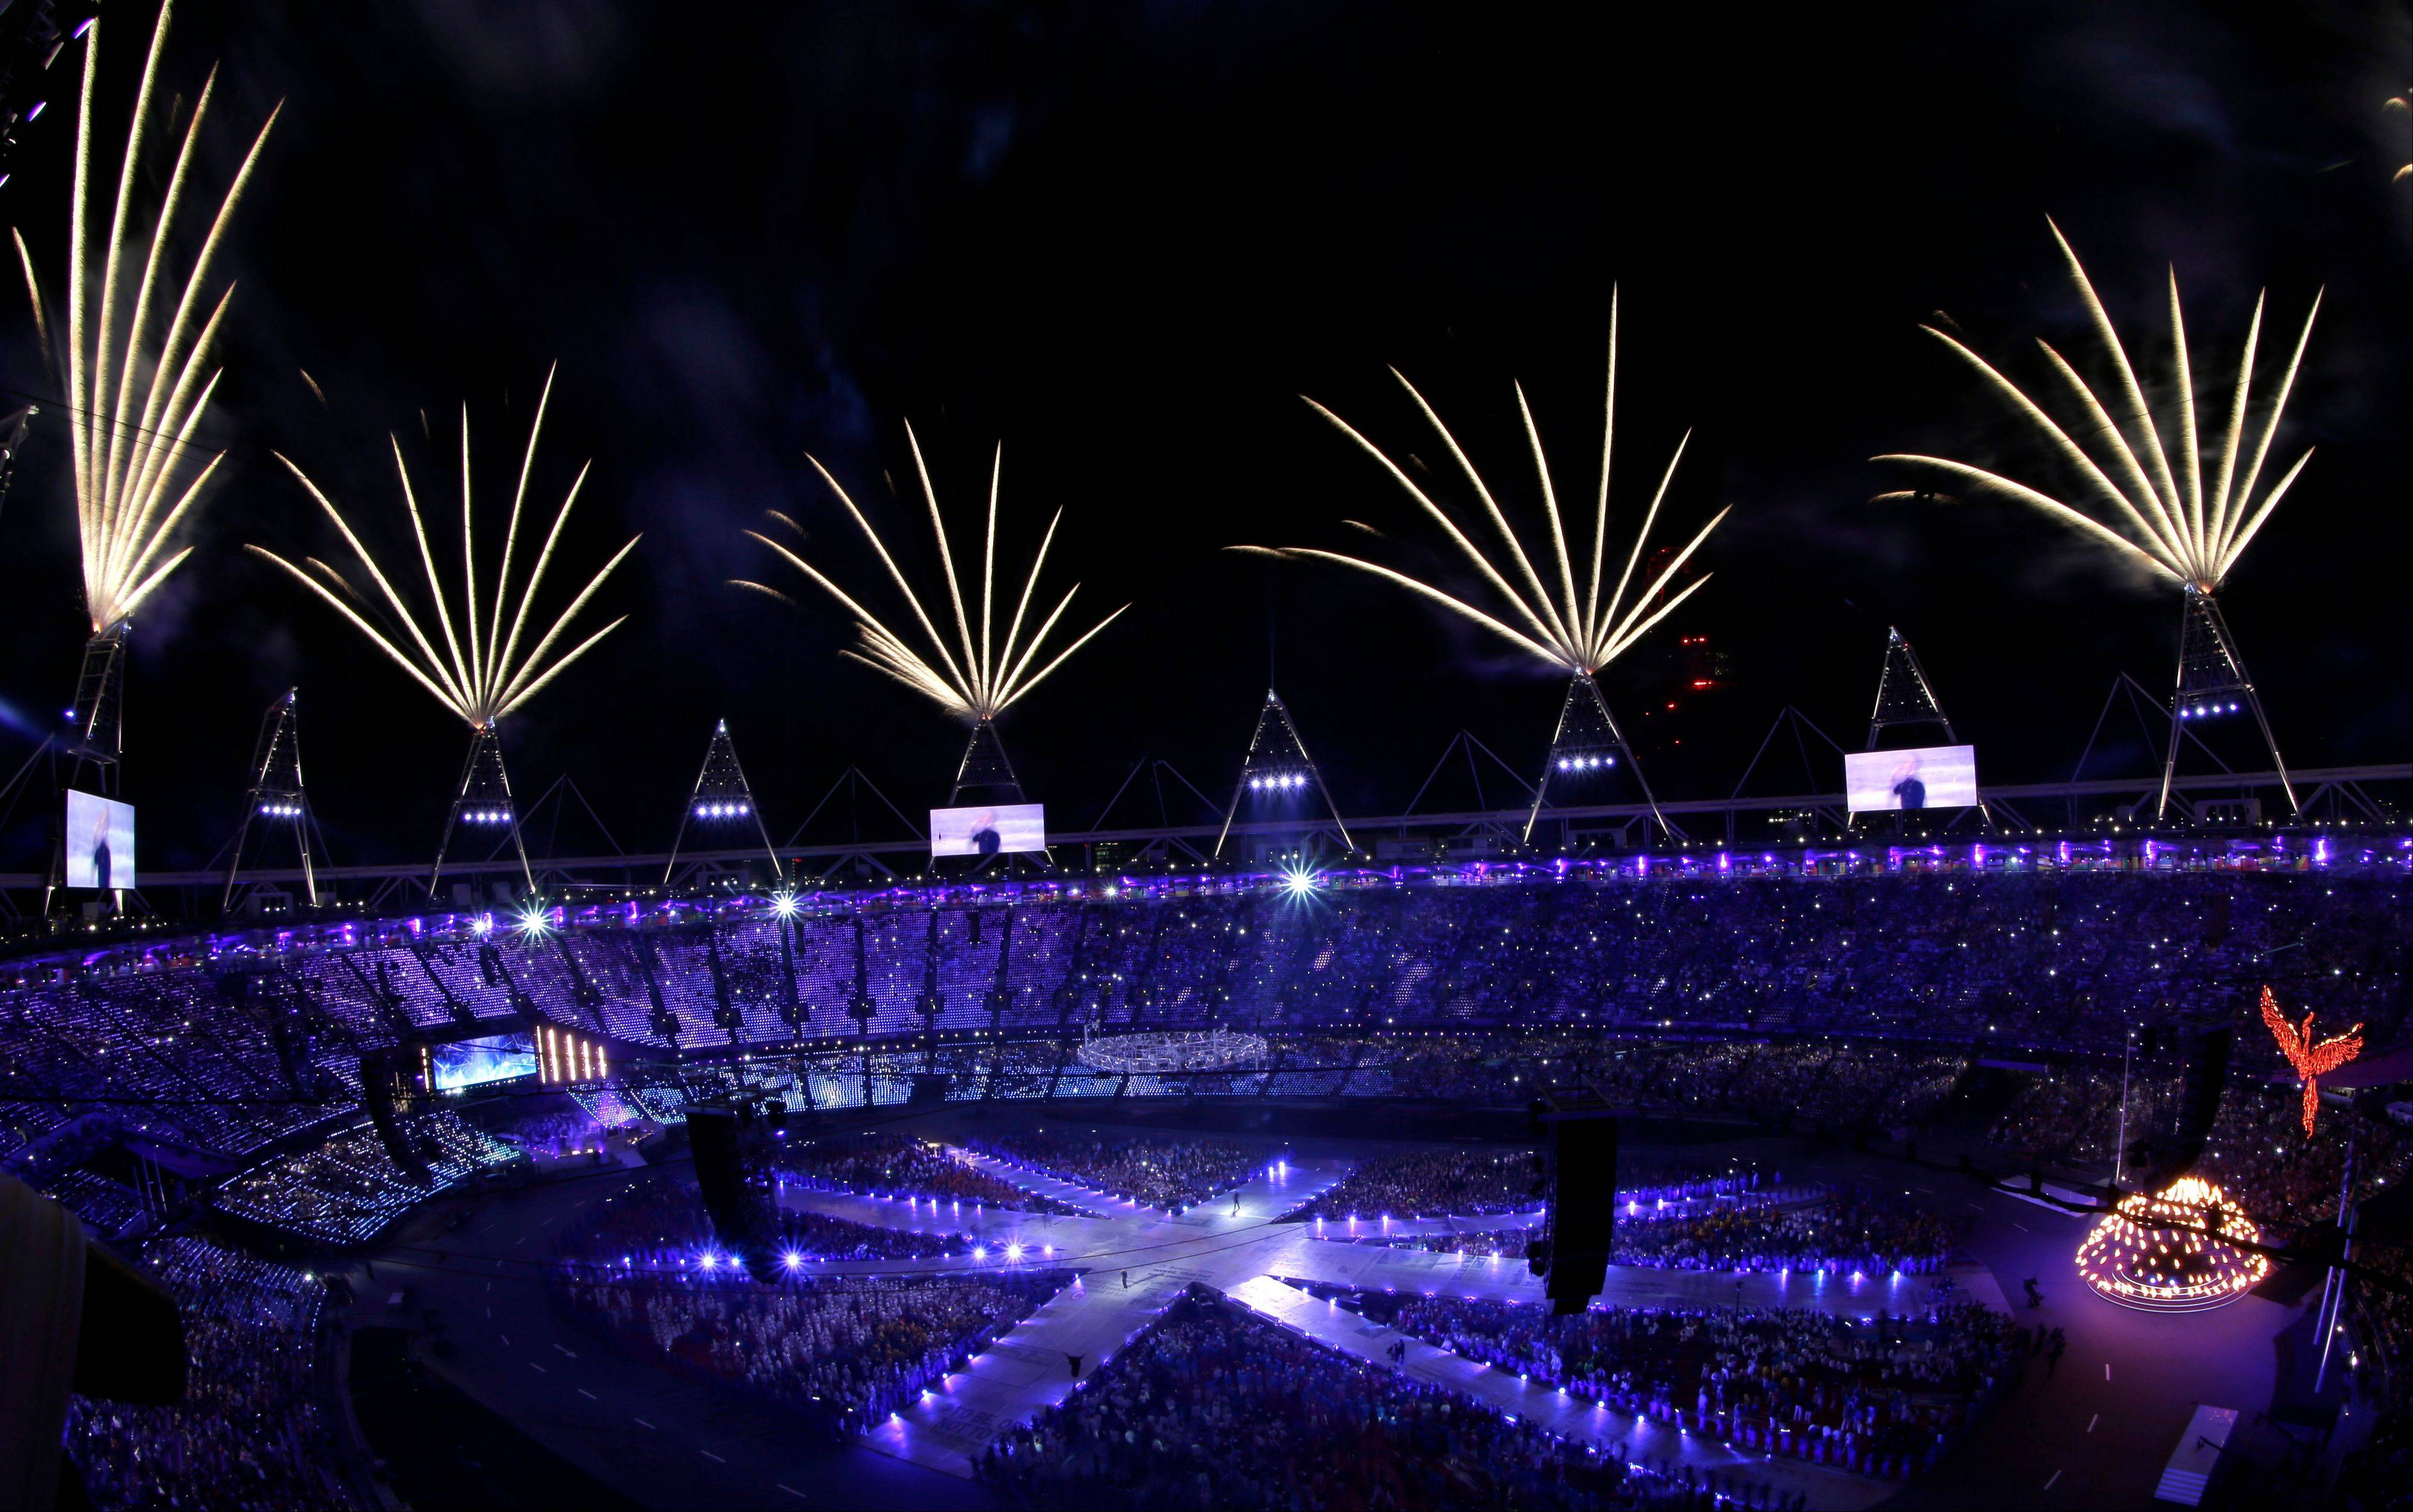 Fireworks soar over the Olympic Stadium as the Olympic flame is lowered during the Closing Ceremony at the 2012 Summer Olympics.